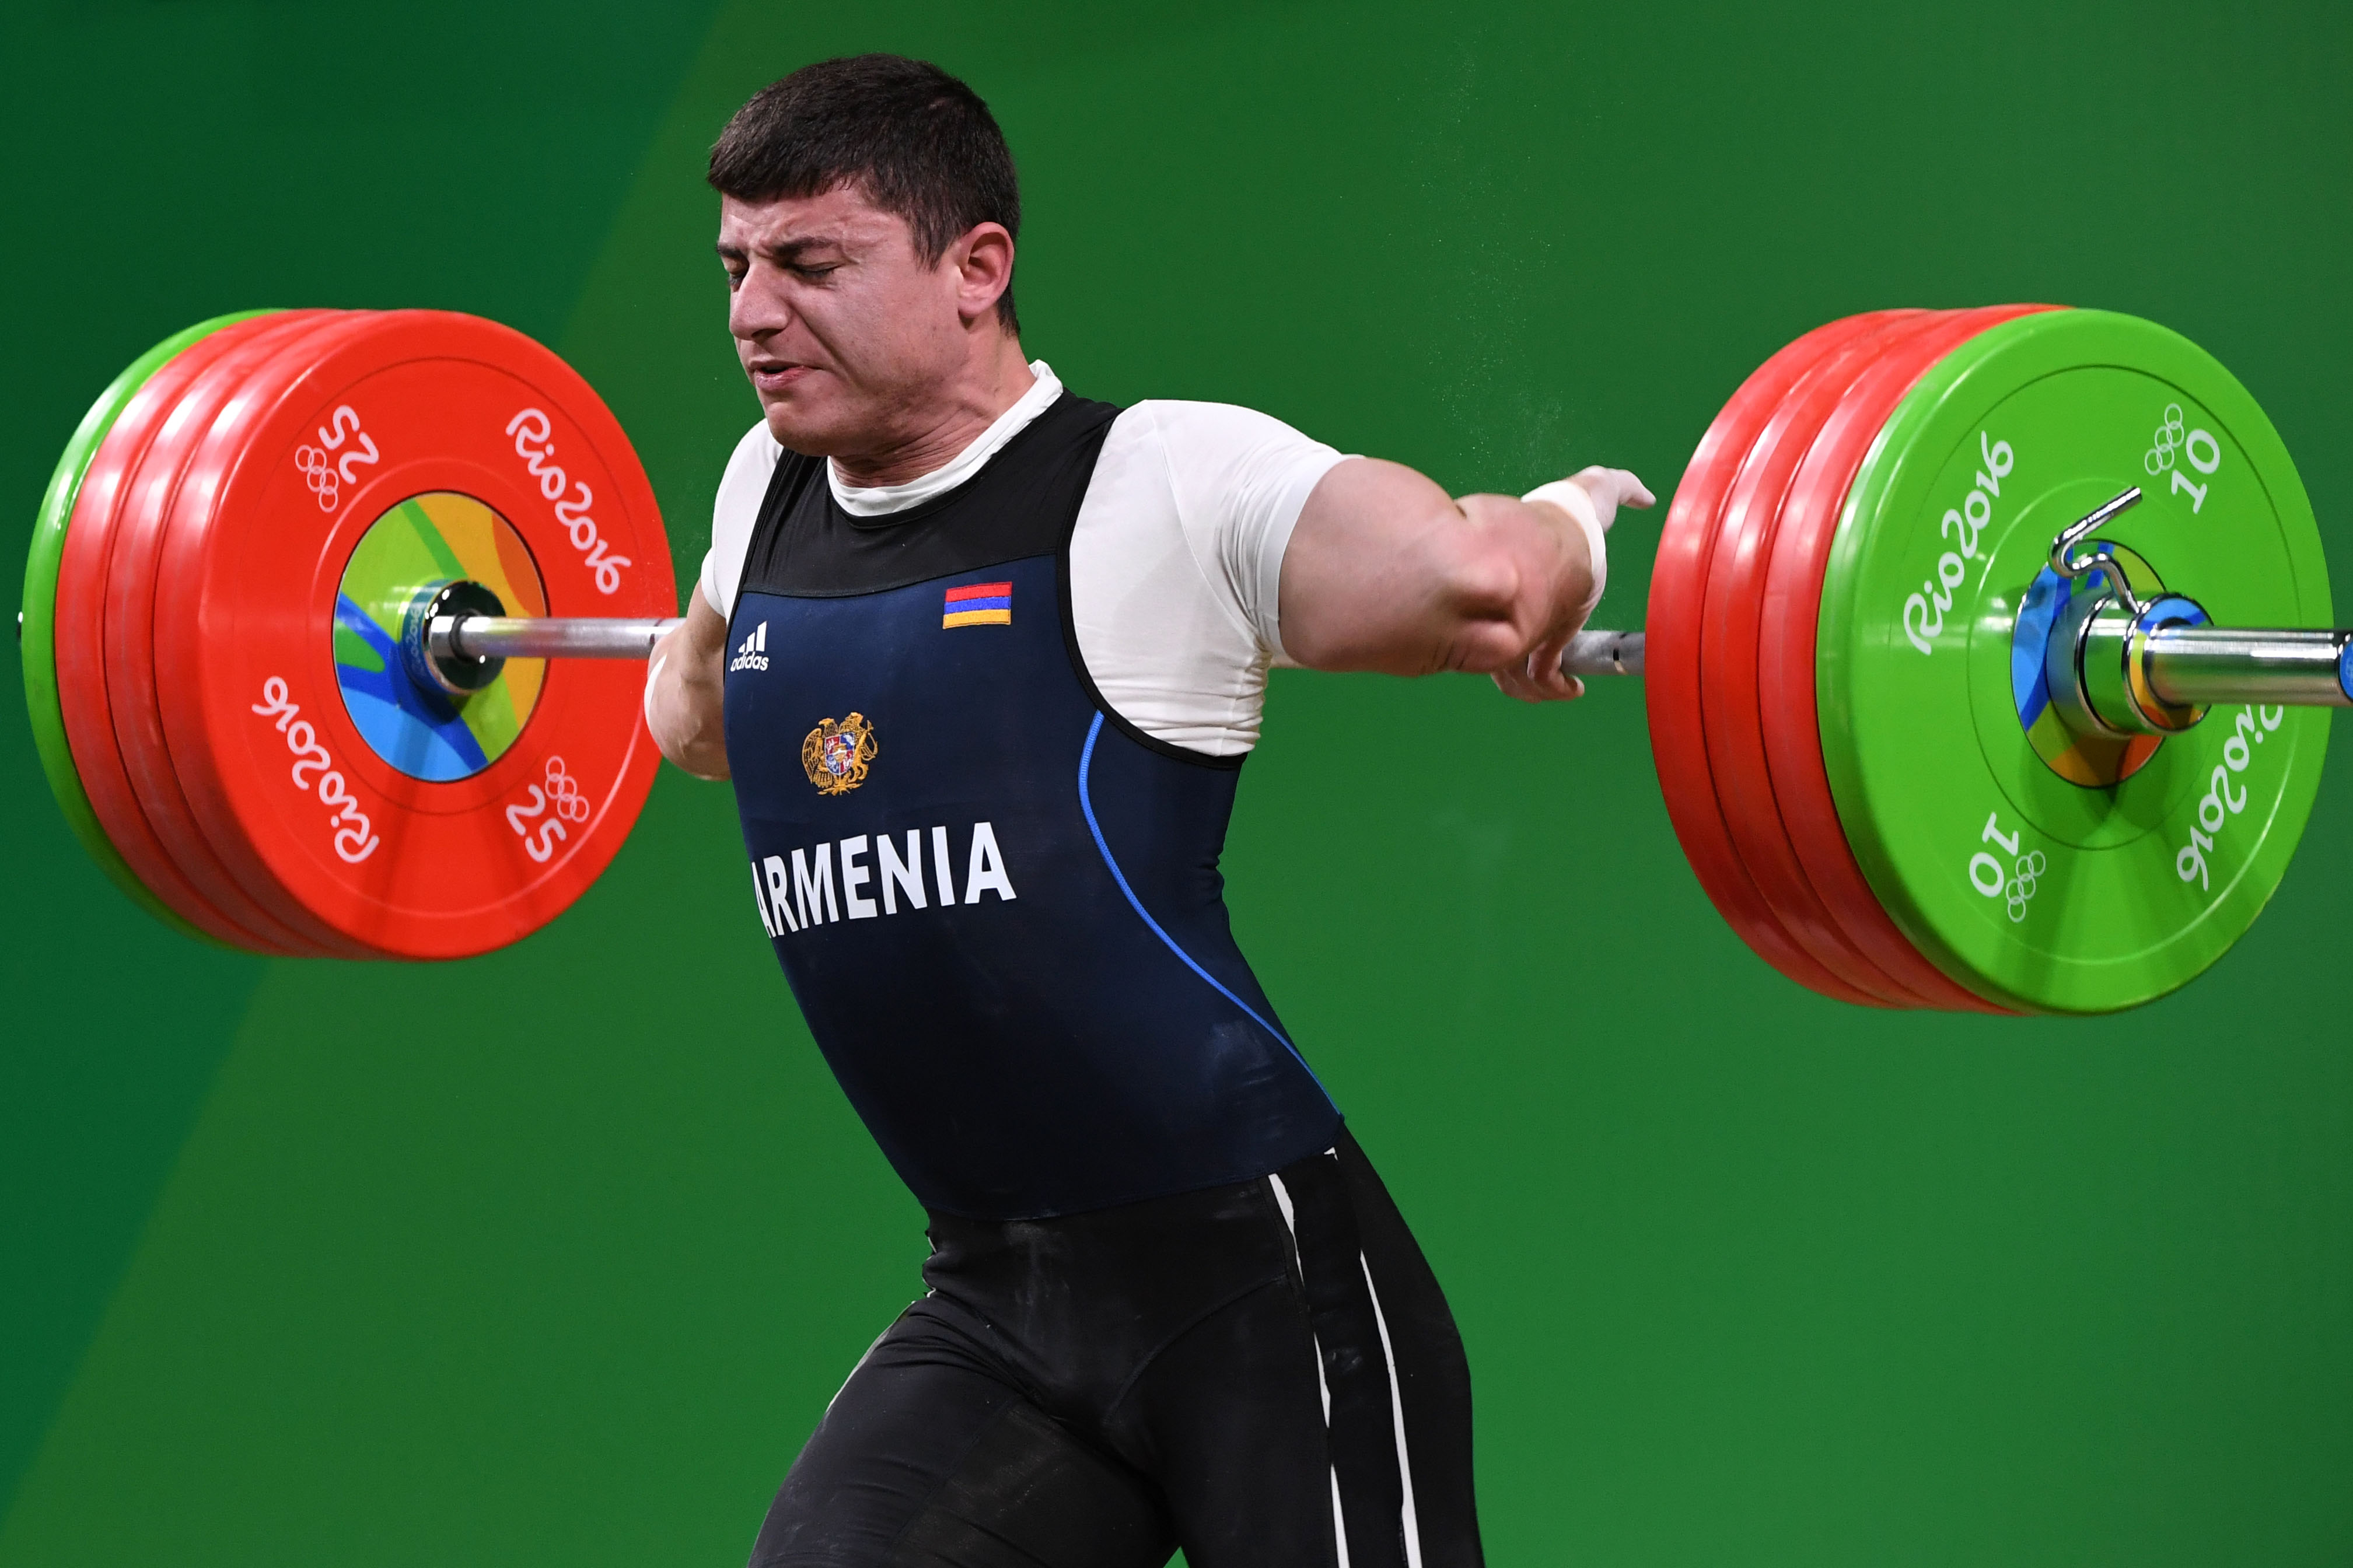 TOPSHOT - Armenia's Andranik Karapetyan sustains an injury while competing during the Men's 77kg weightlifting competition at the Rio 2016 Olympic Games in Rio de Janeiro on August 10, 2016. / AFP PHOTO / GOH Chai Hin